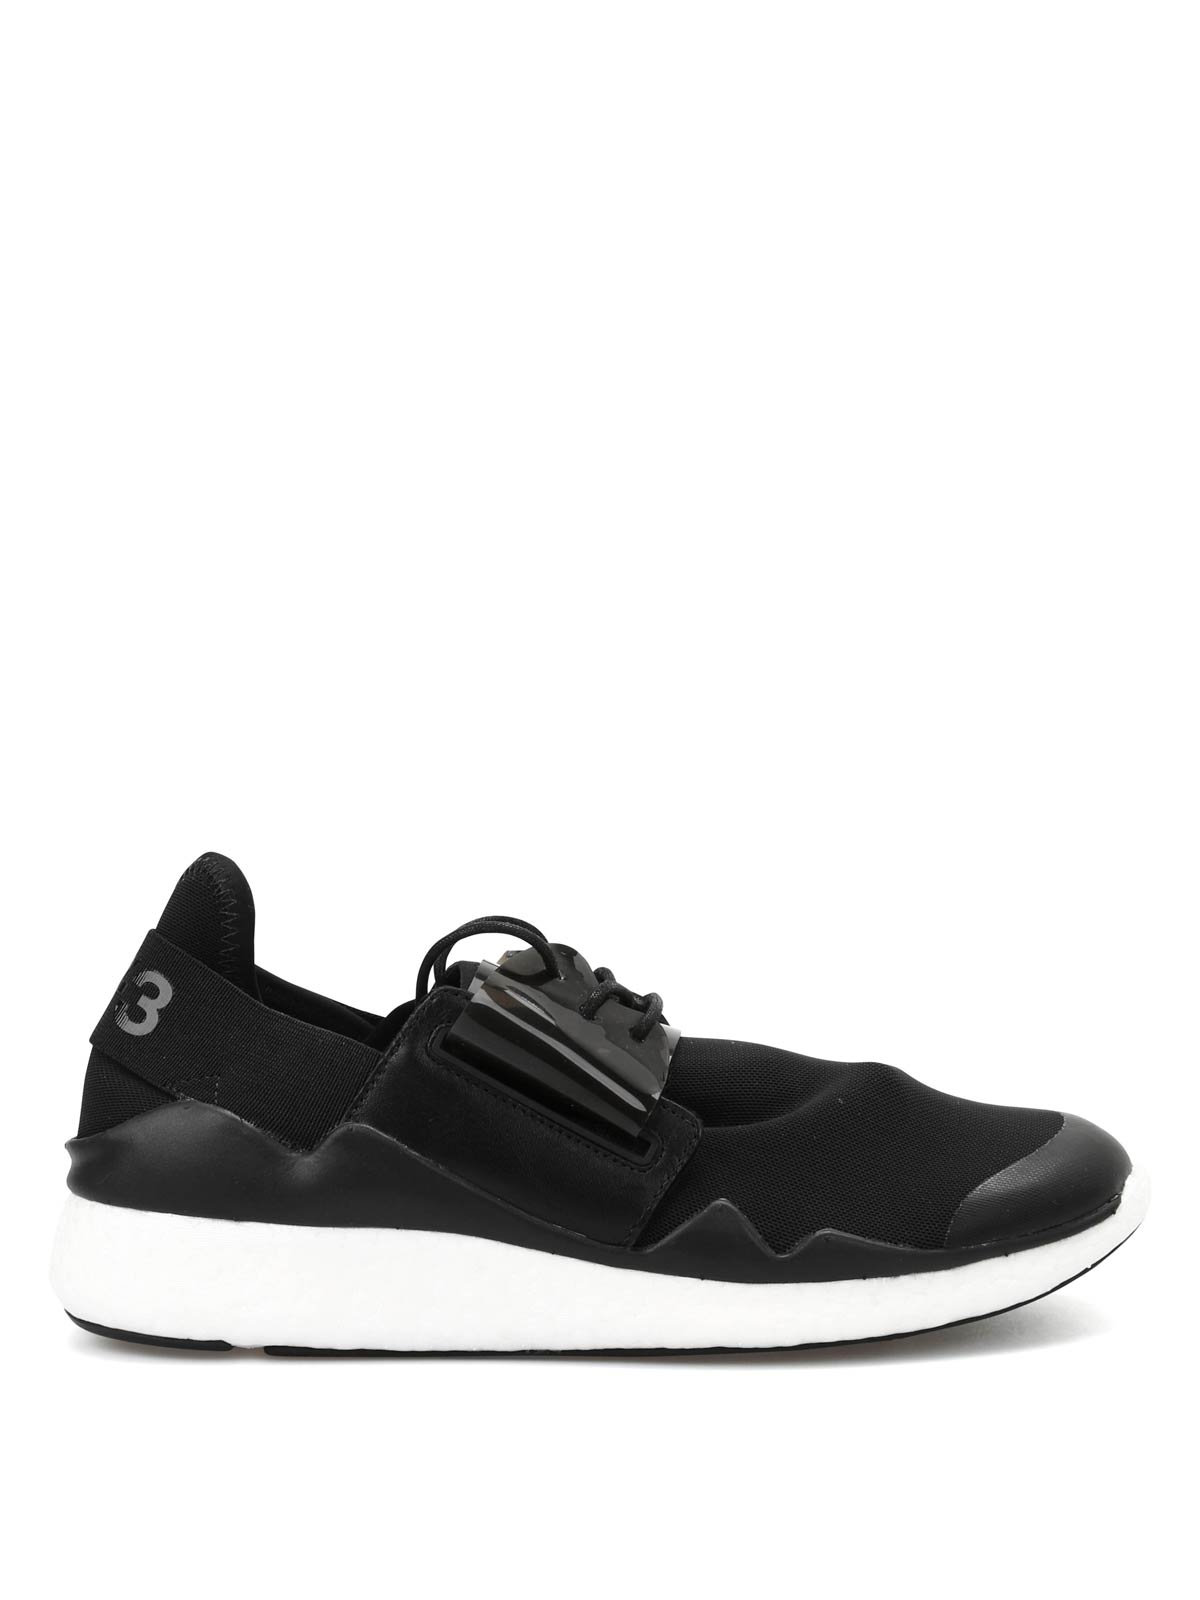 d107fe3ca6837 ADIDAS Y-3  trainers online - Y-3 Chimu Boost sneakers